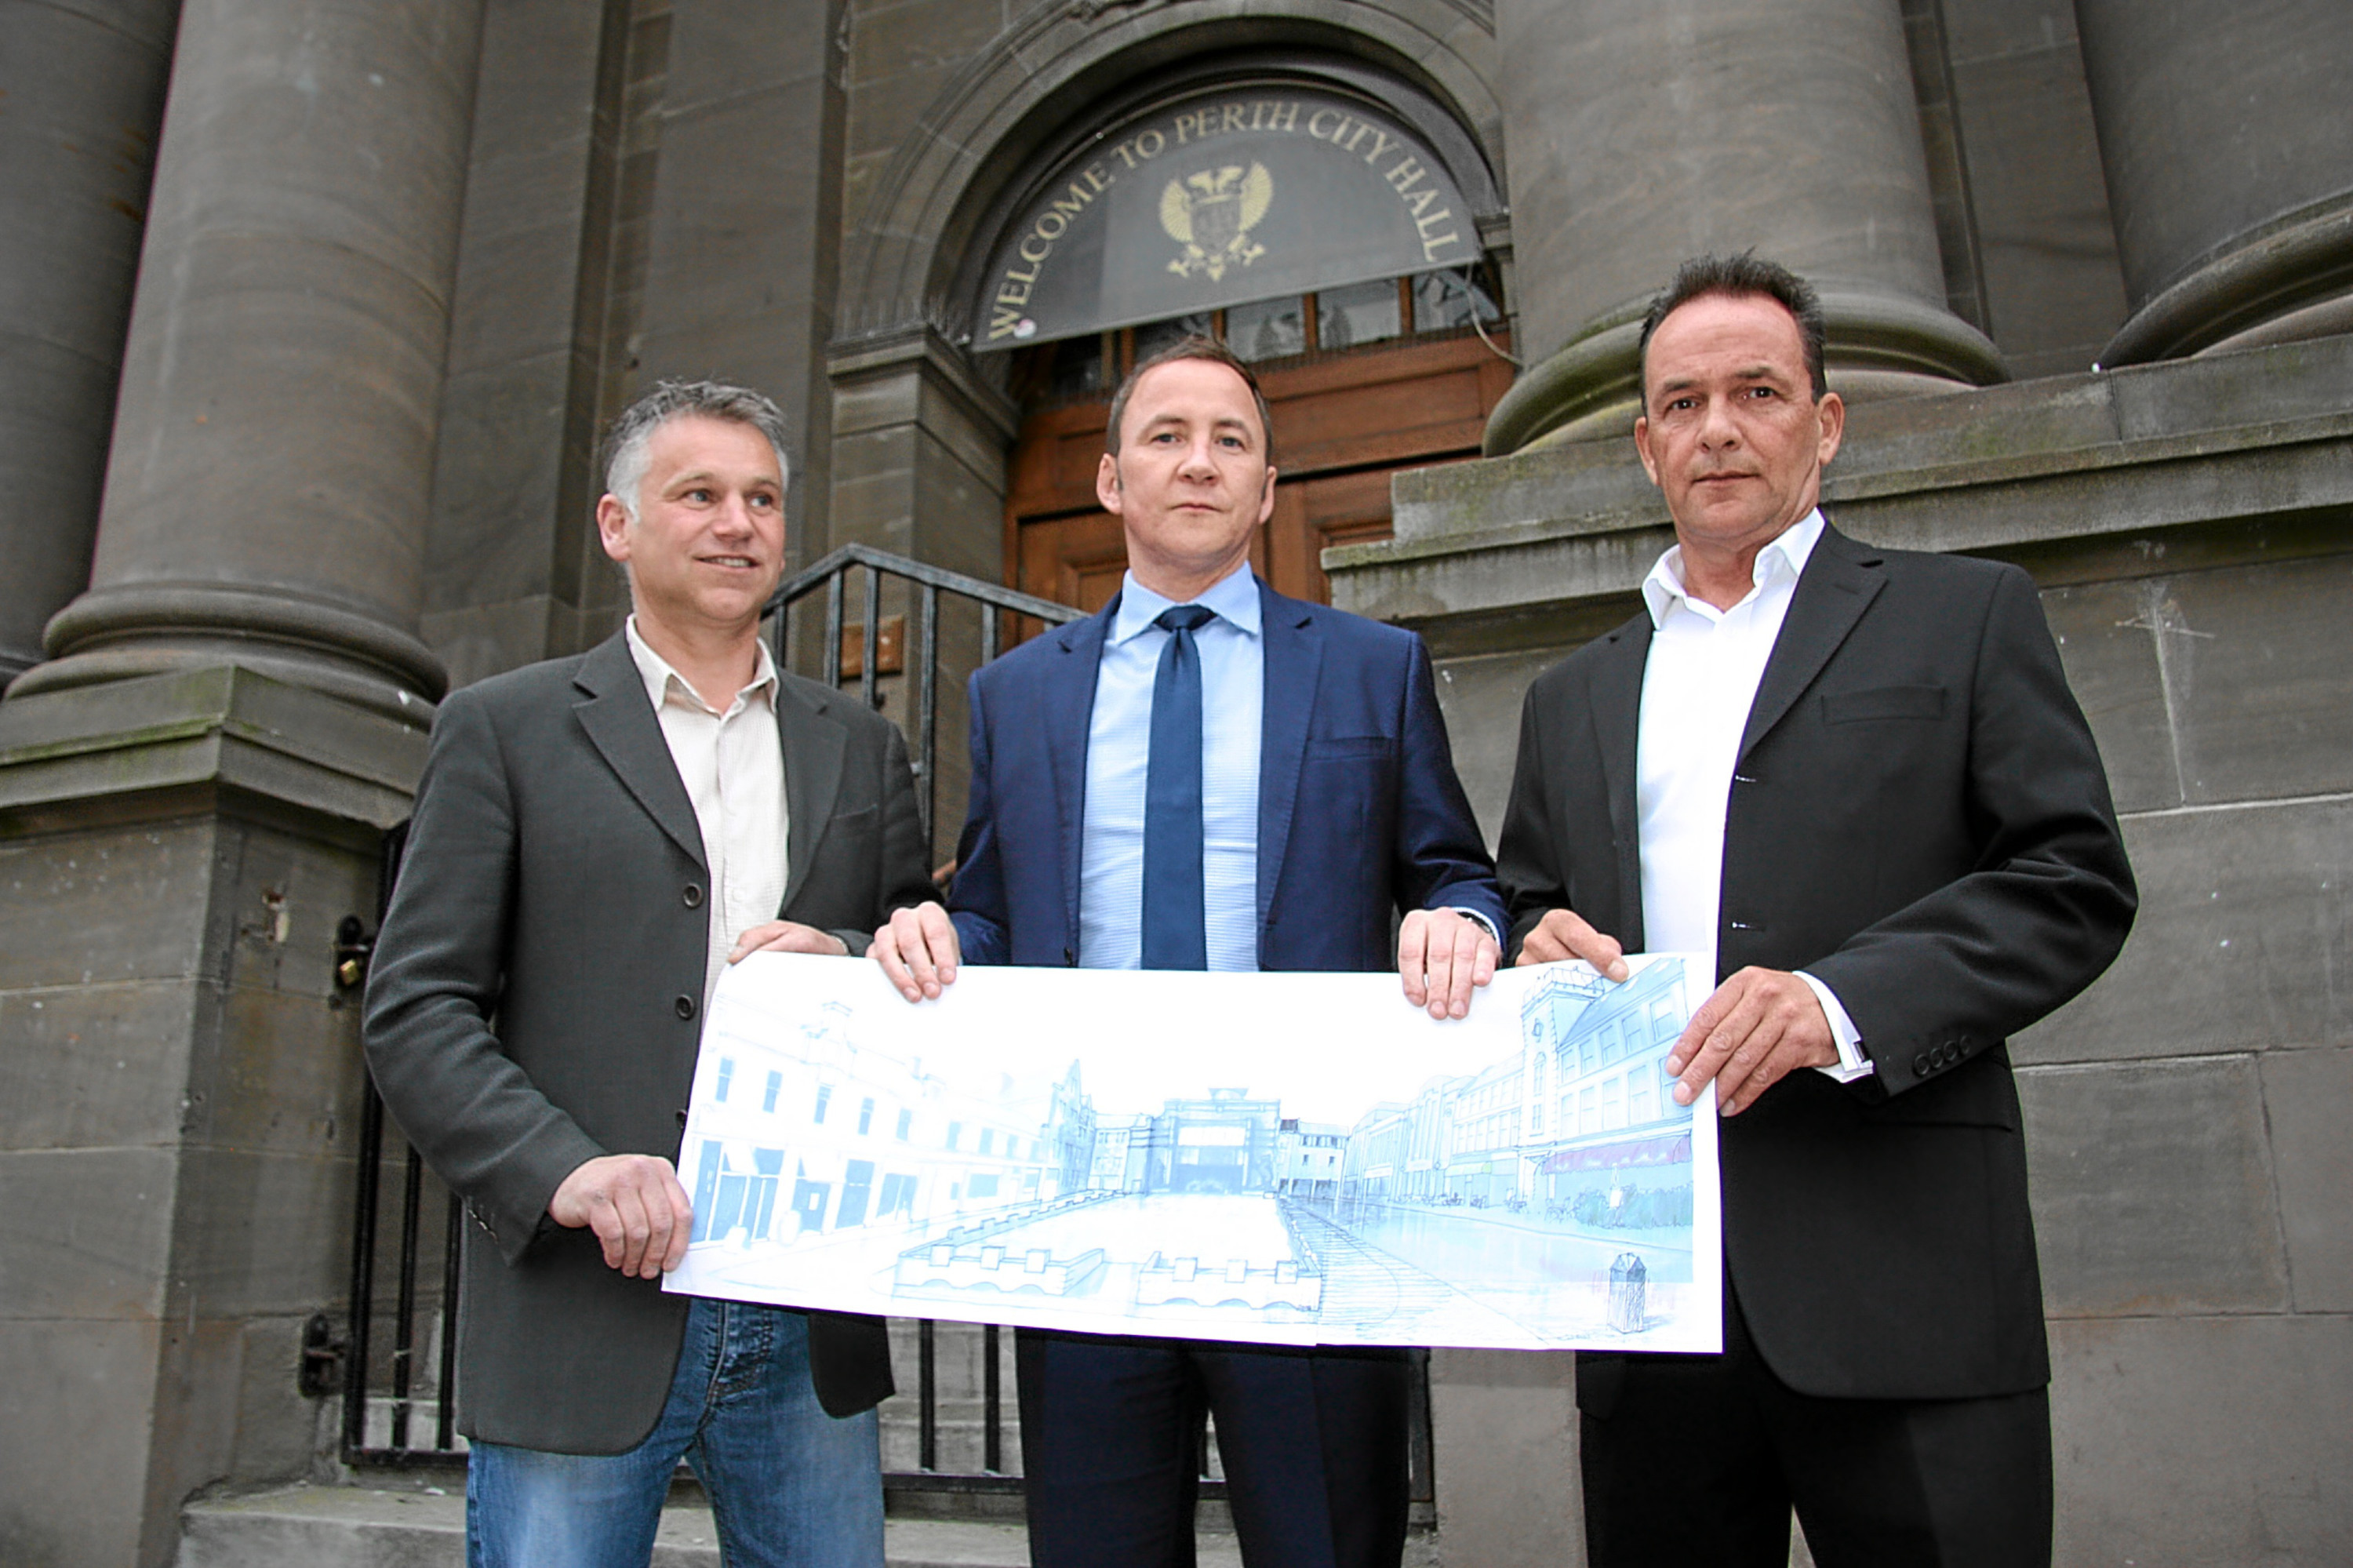 Pic of Simon Horne (left), Derek Petterson and Brian Cavellini who drew up their own plan for City Hall. Also an artist's impression of their plan for a retained City Hall and civic square.